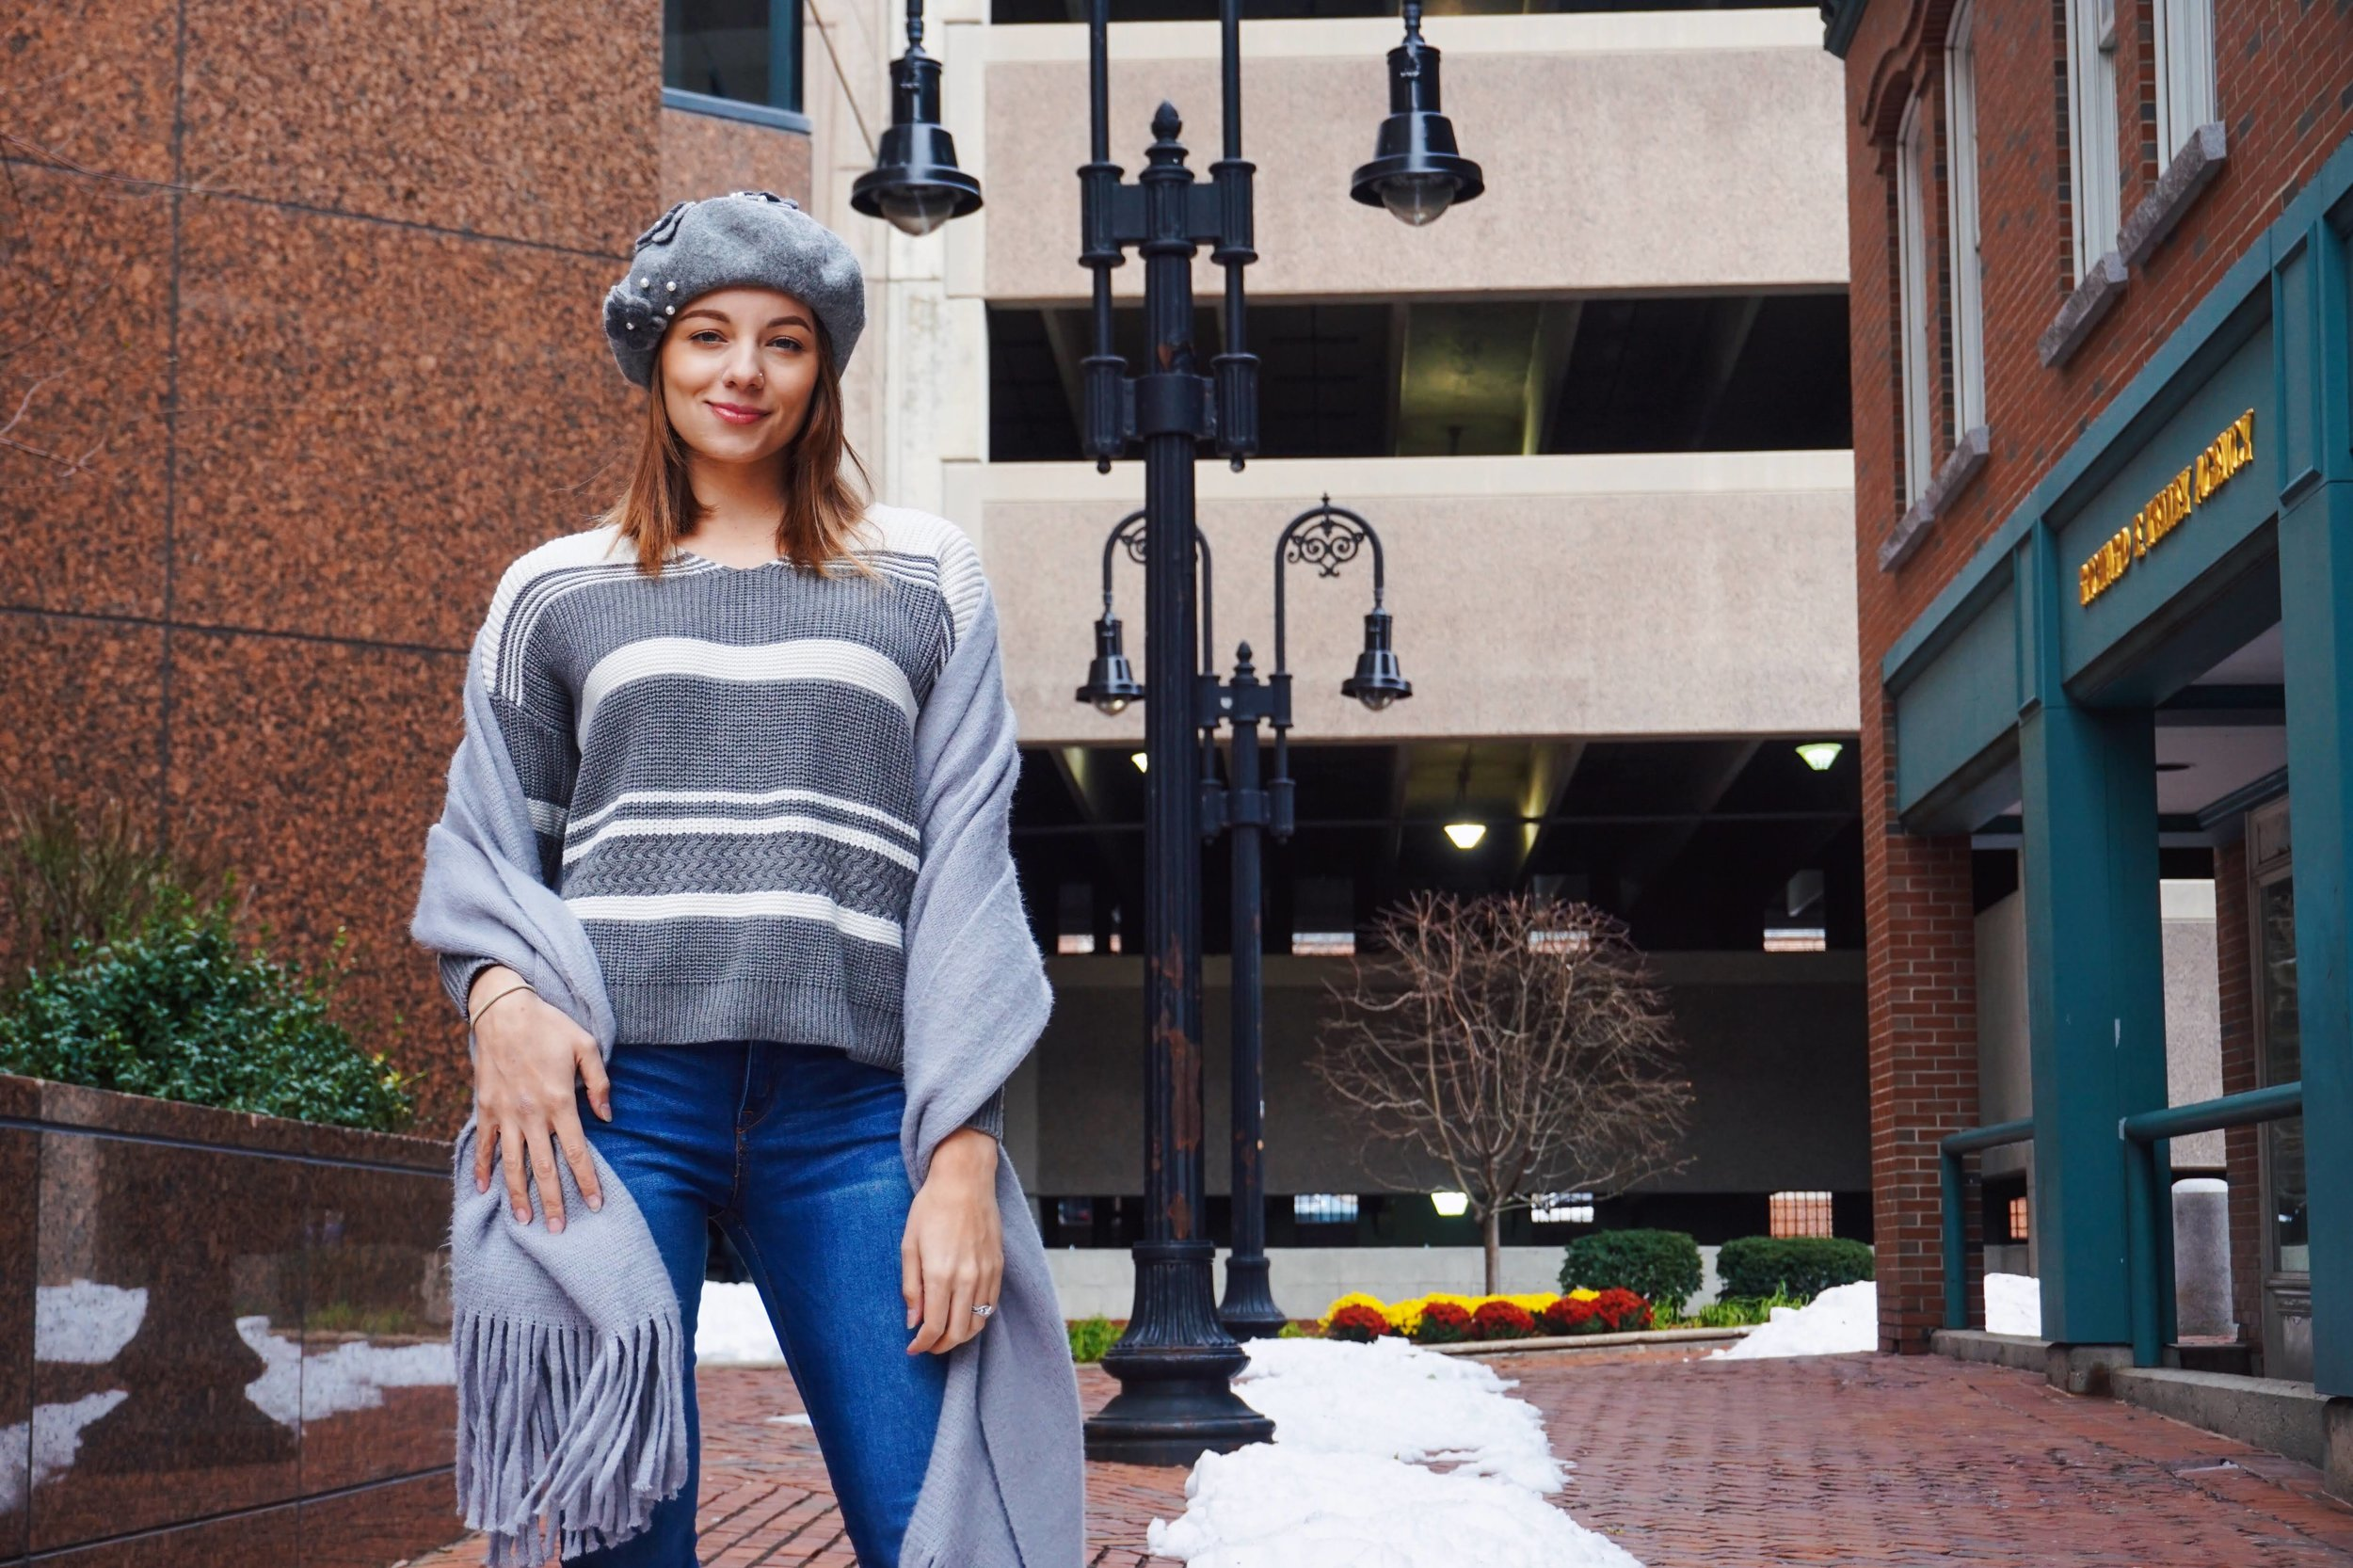 A photo of a lifestyle blogger in Boston who is wearing a gray sweater with white stripes, gray scarf, blue denim jeans, and gray beret.